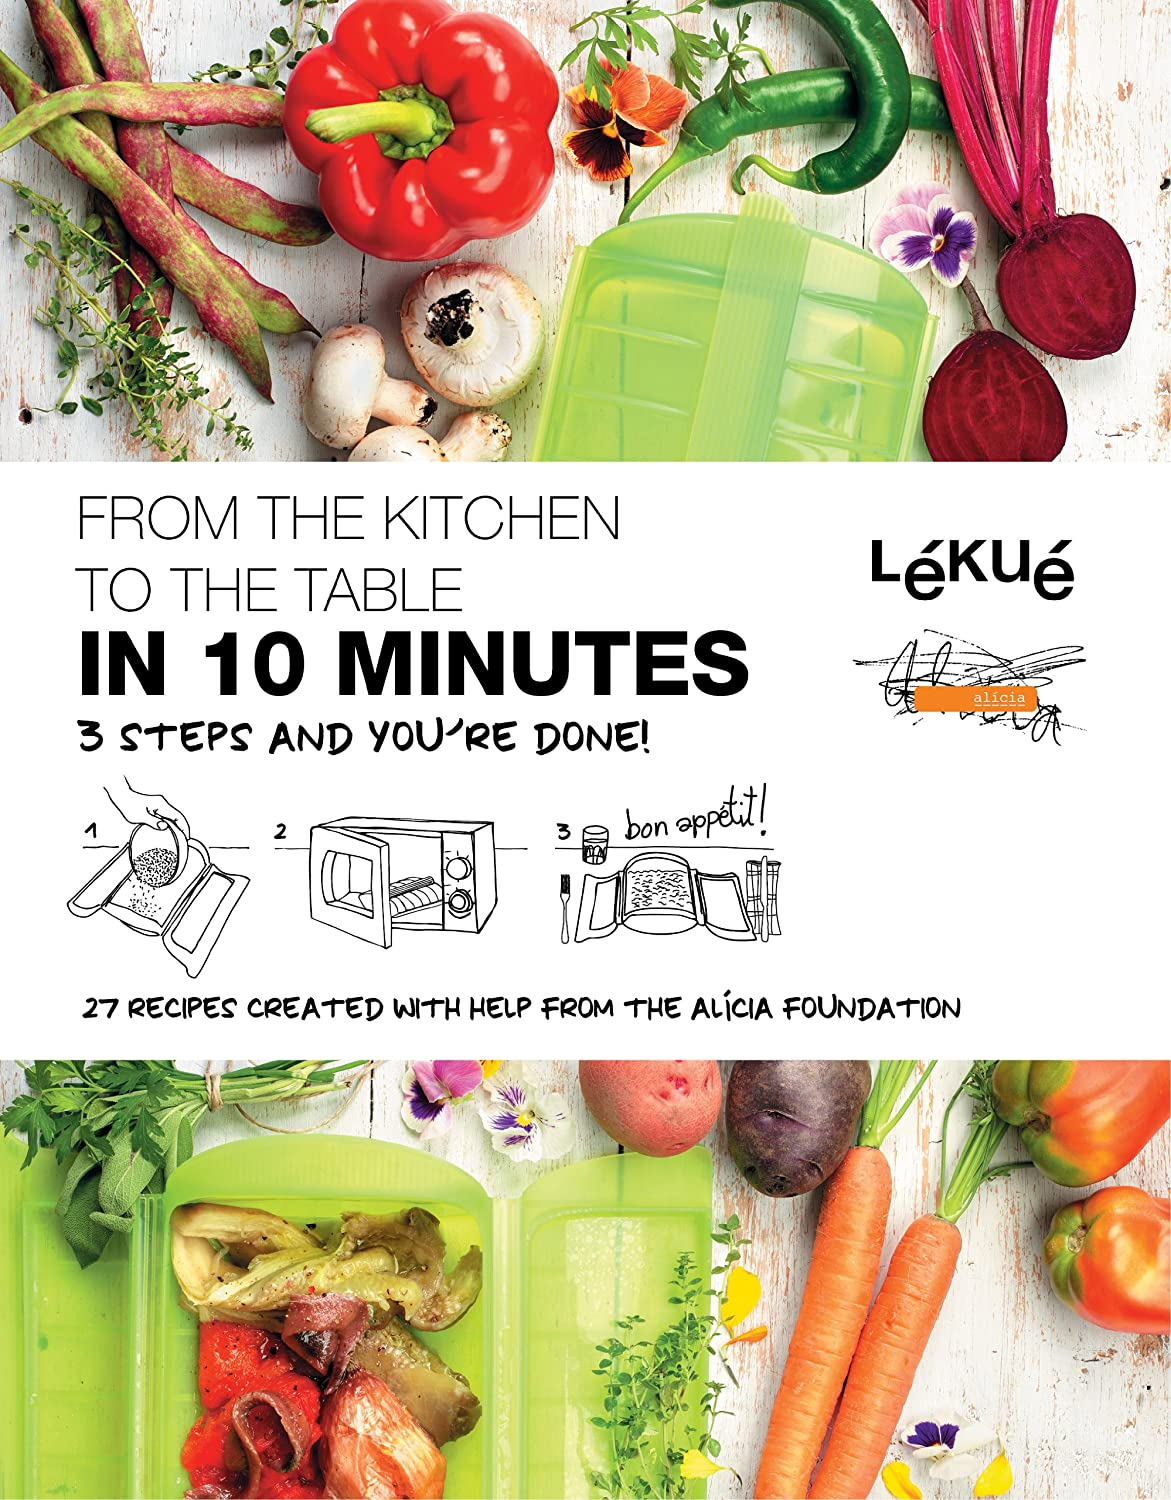 Lekue 3-4 Person Steam Case With Draining Tray and Bonus 10 Minute Cookbook Clear